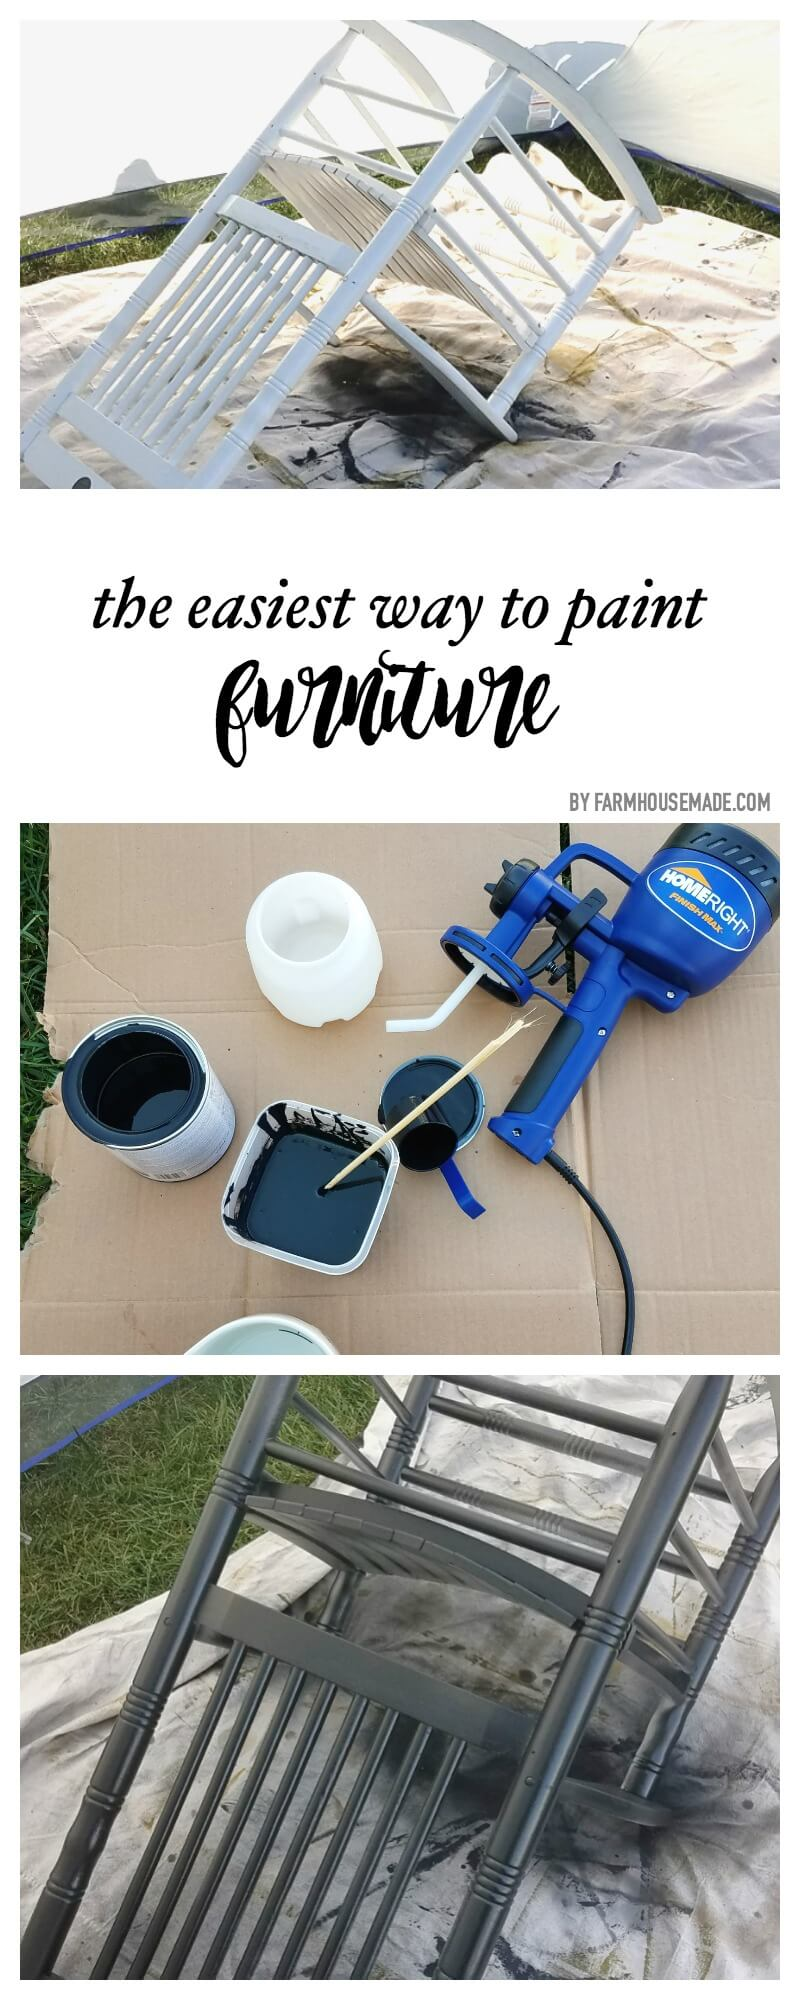 paint sprayer for furniturePainting Furniture the Easy Way  FARMHOUSE MADE